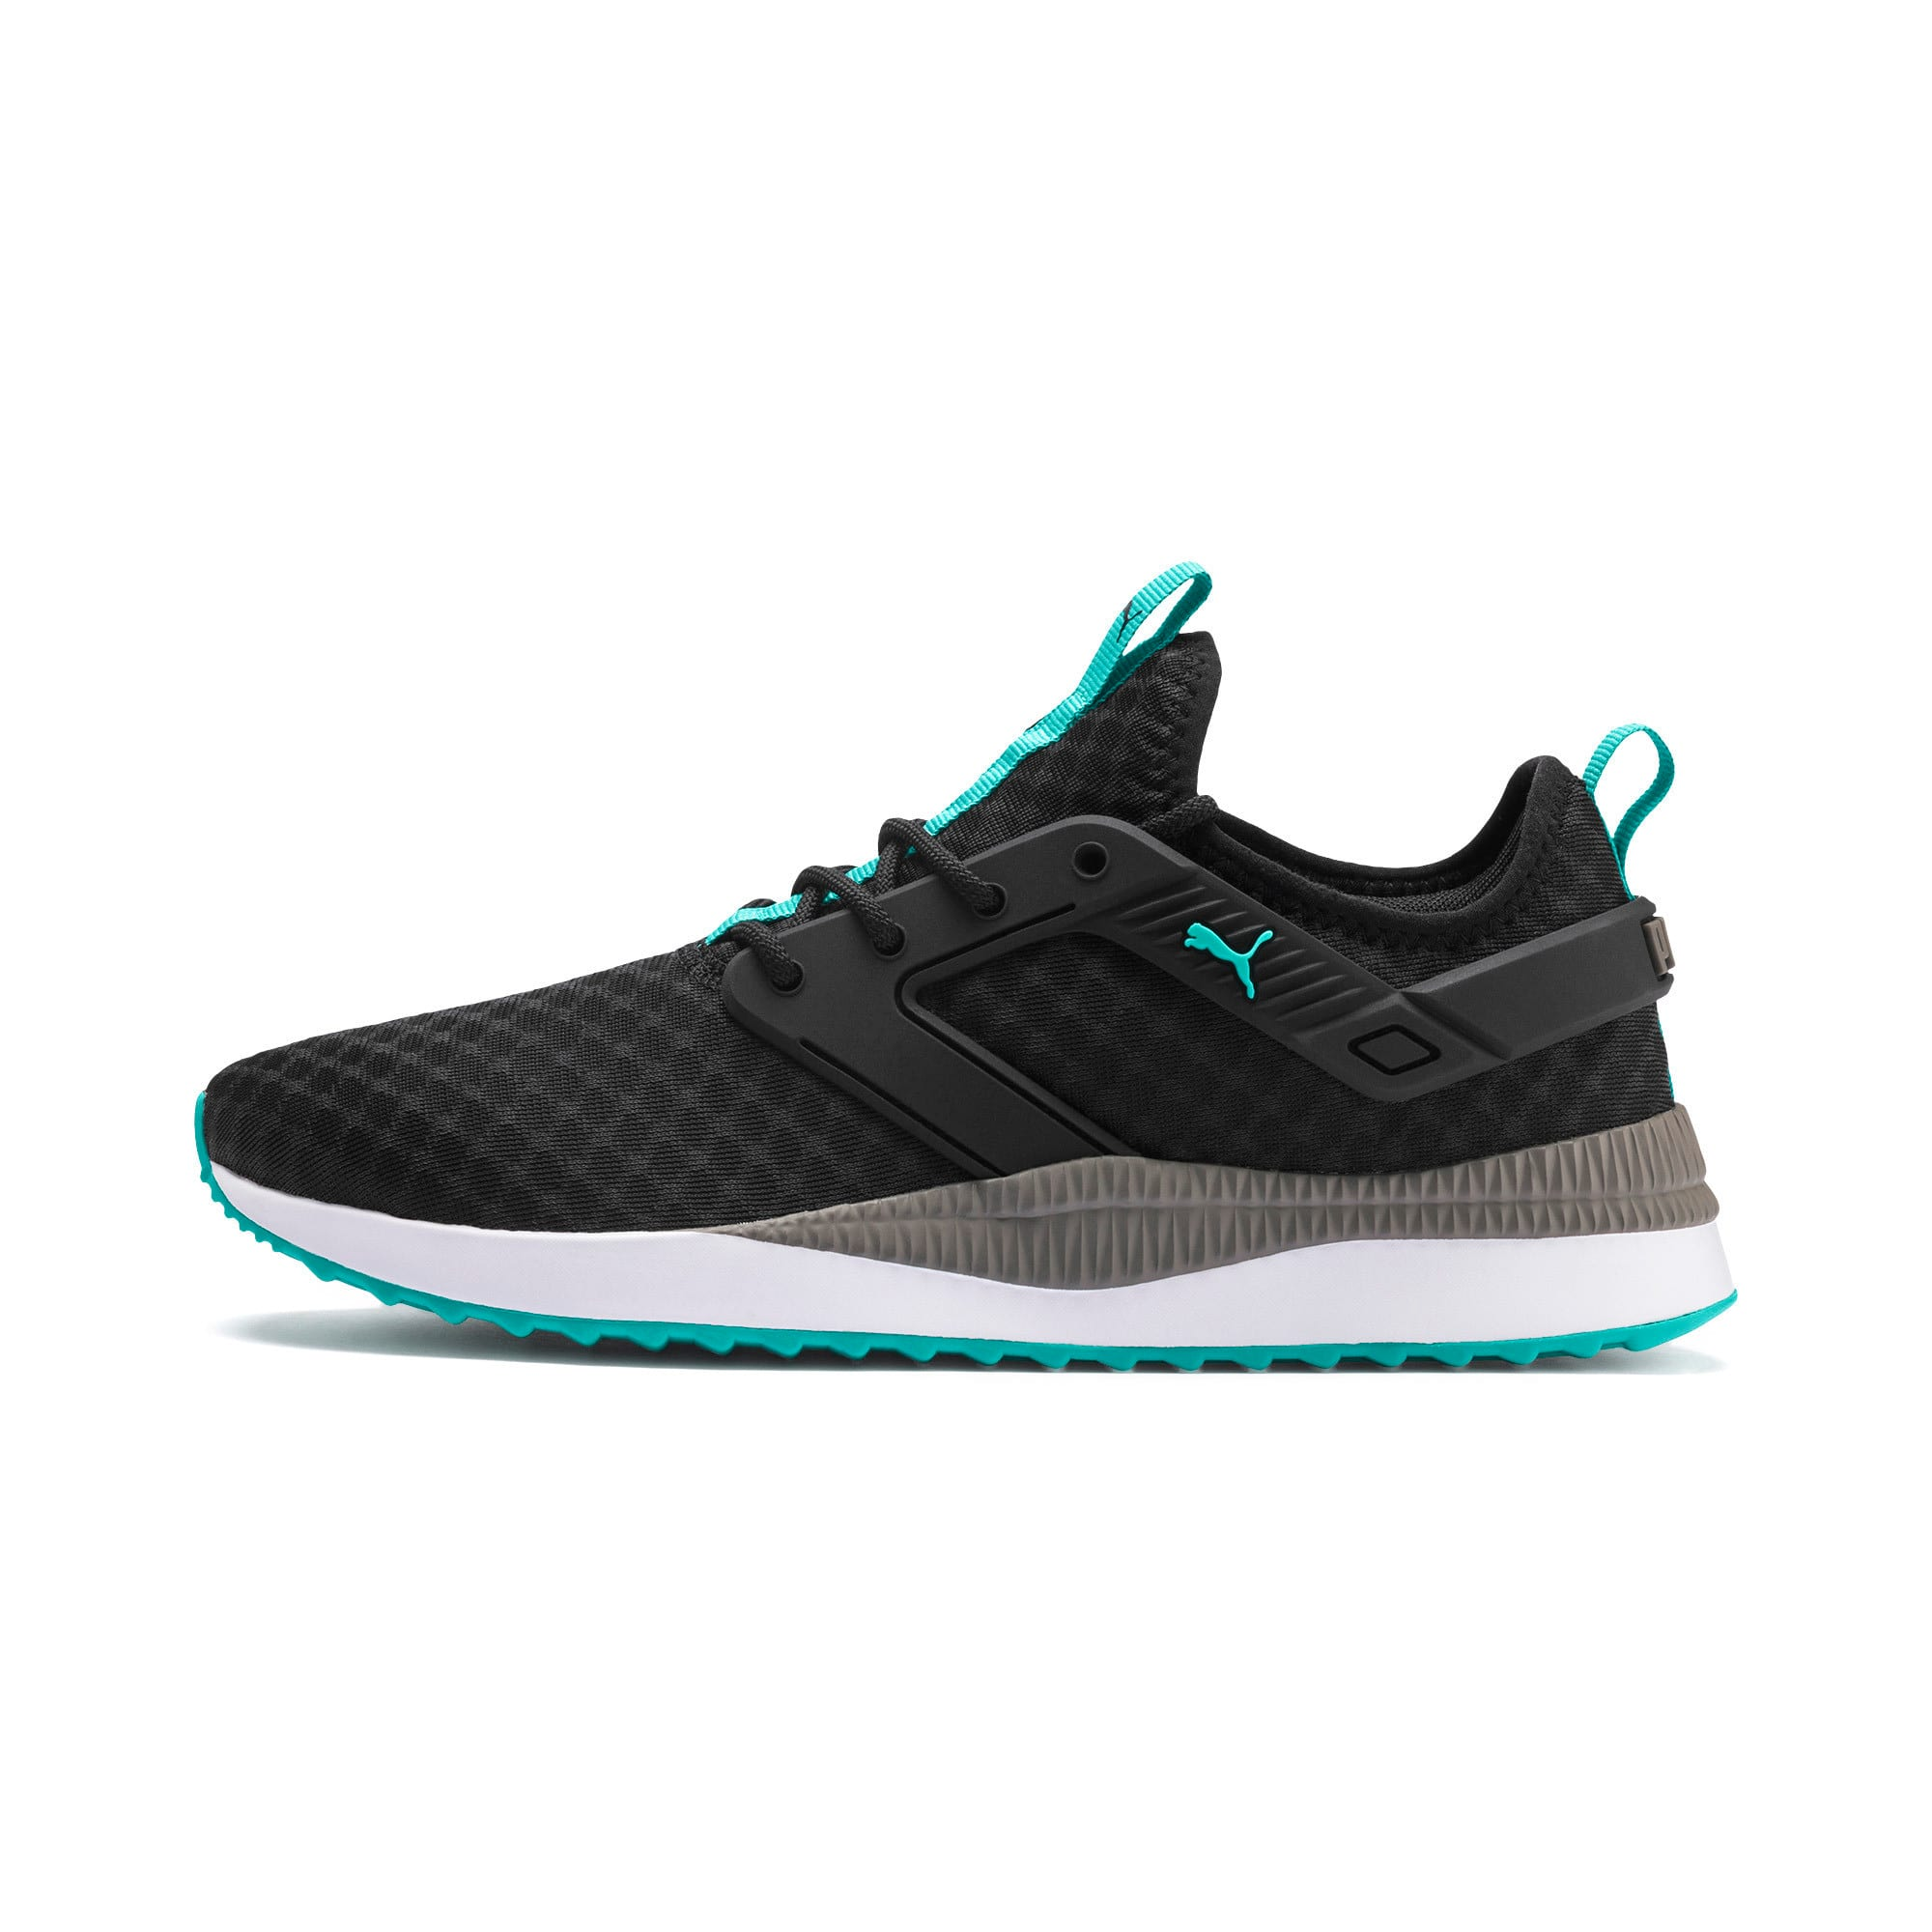 Thumbnail 1 of Pacer Next Excel Core Sneakers, Puma Black-Blue Turquoise, medium